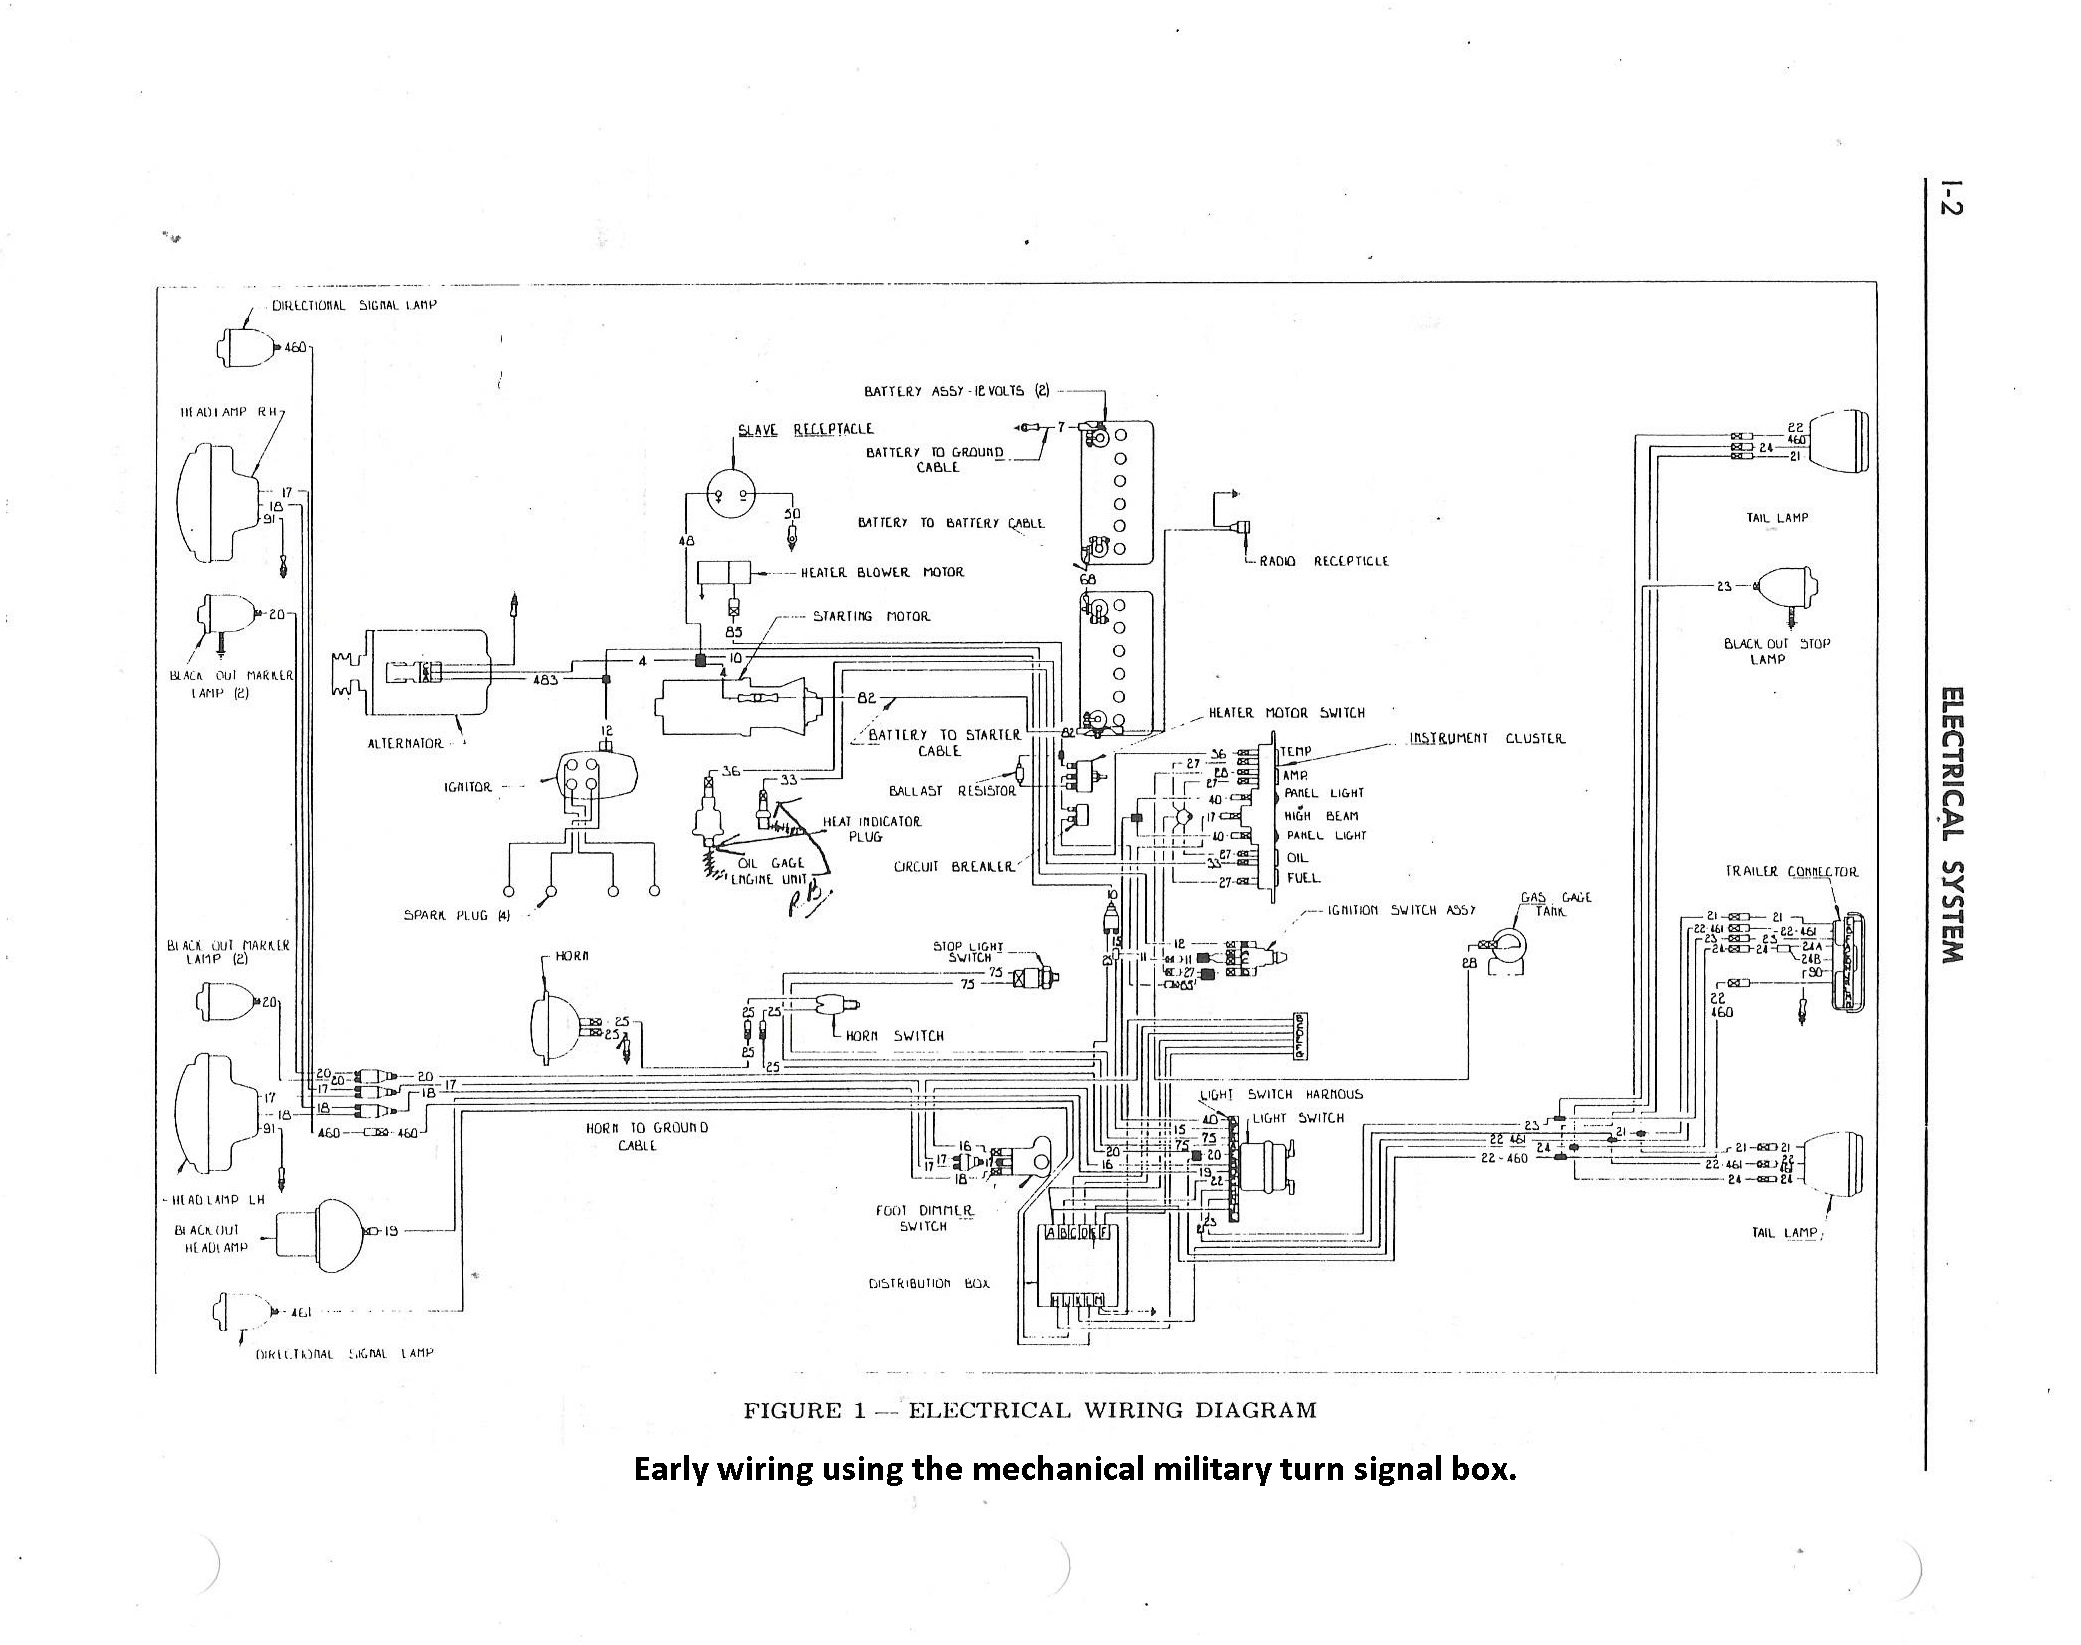 m38a1 light switch diagram  m38a1  free engine image for